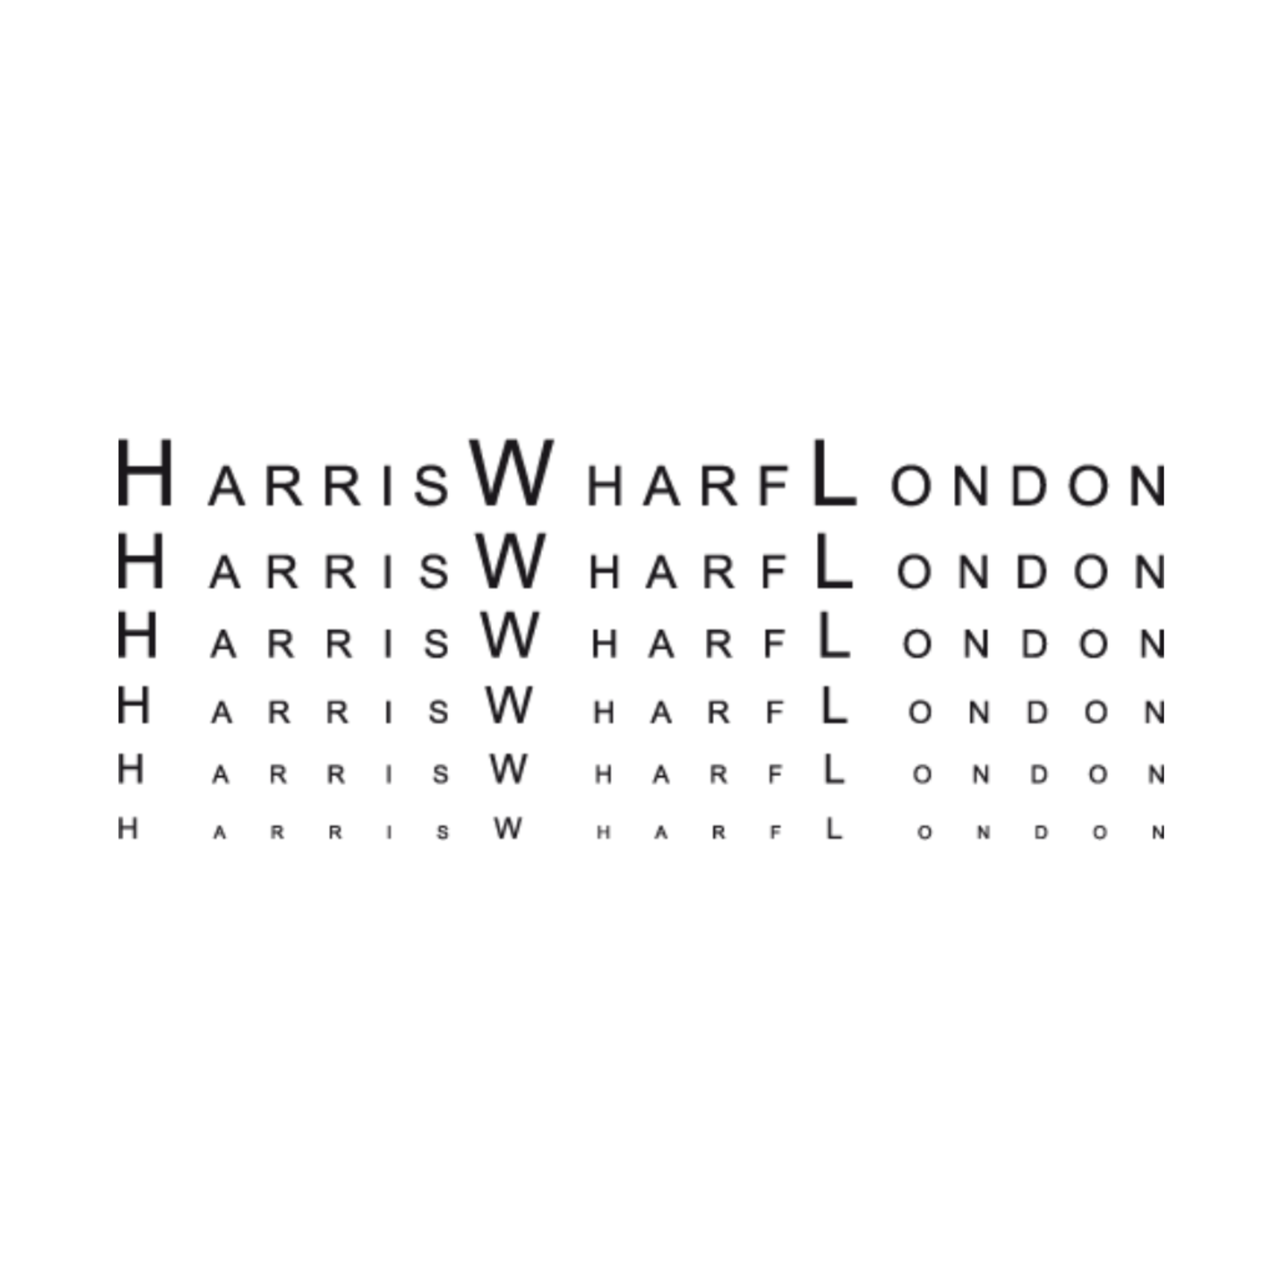 HARRIS WHARF LONDON